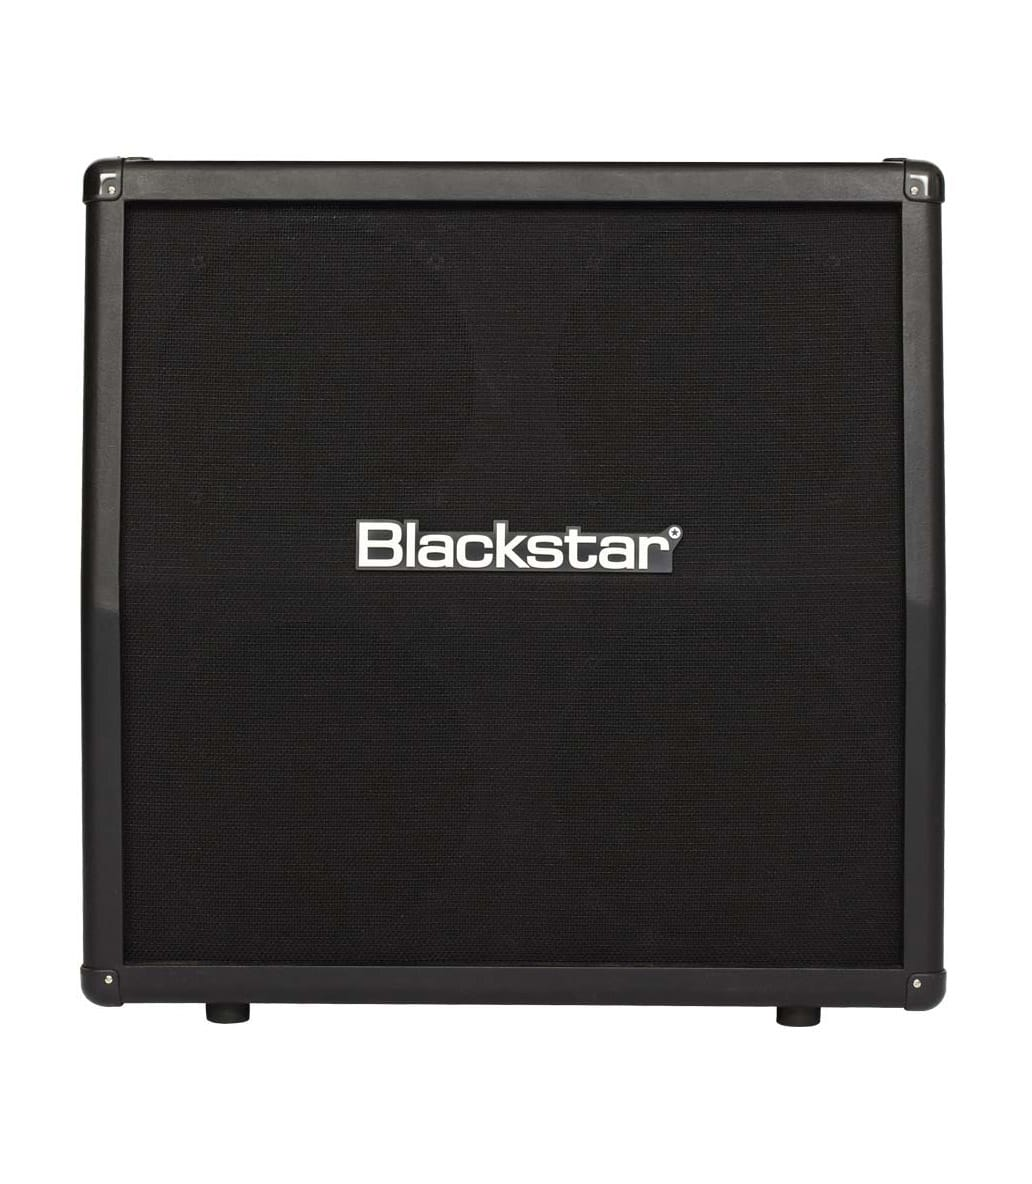 Buy blackstar ID 412A4 x 12 Angled Speaker Cabinet Melody House